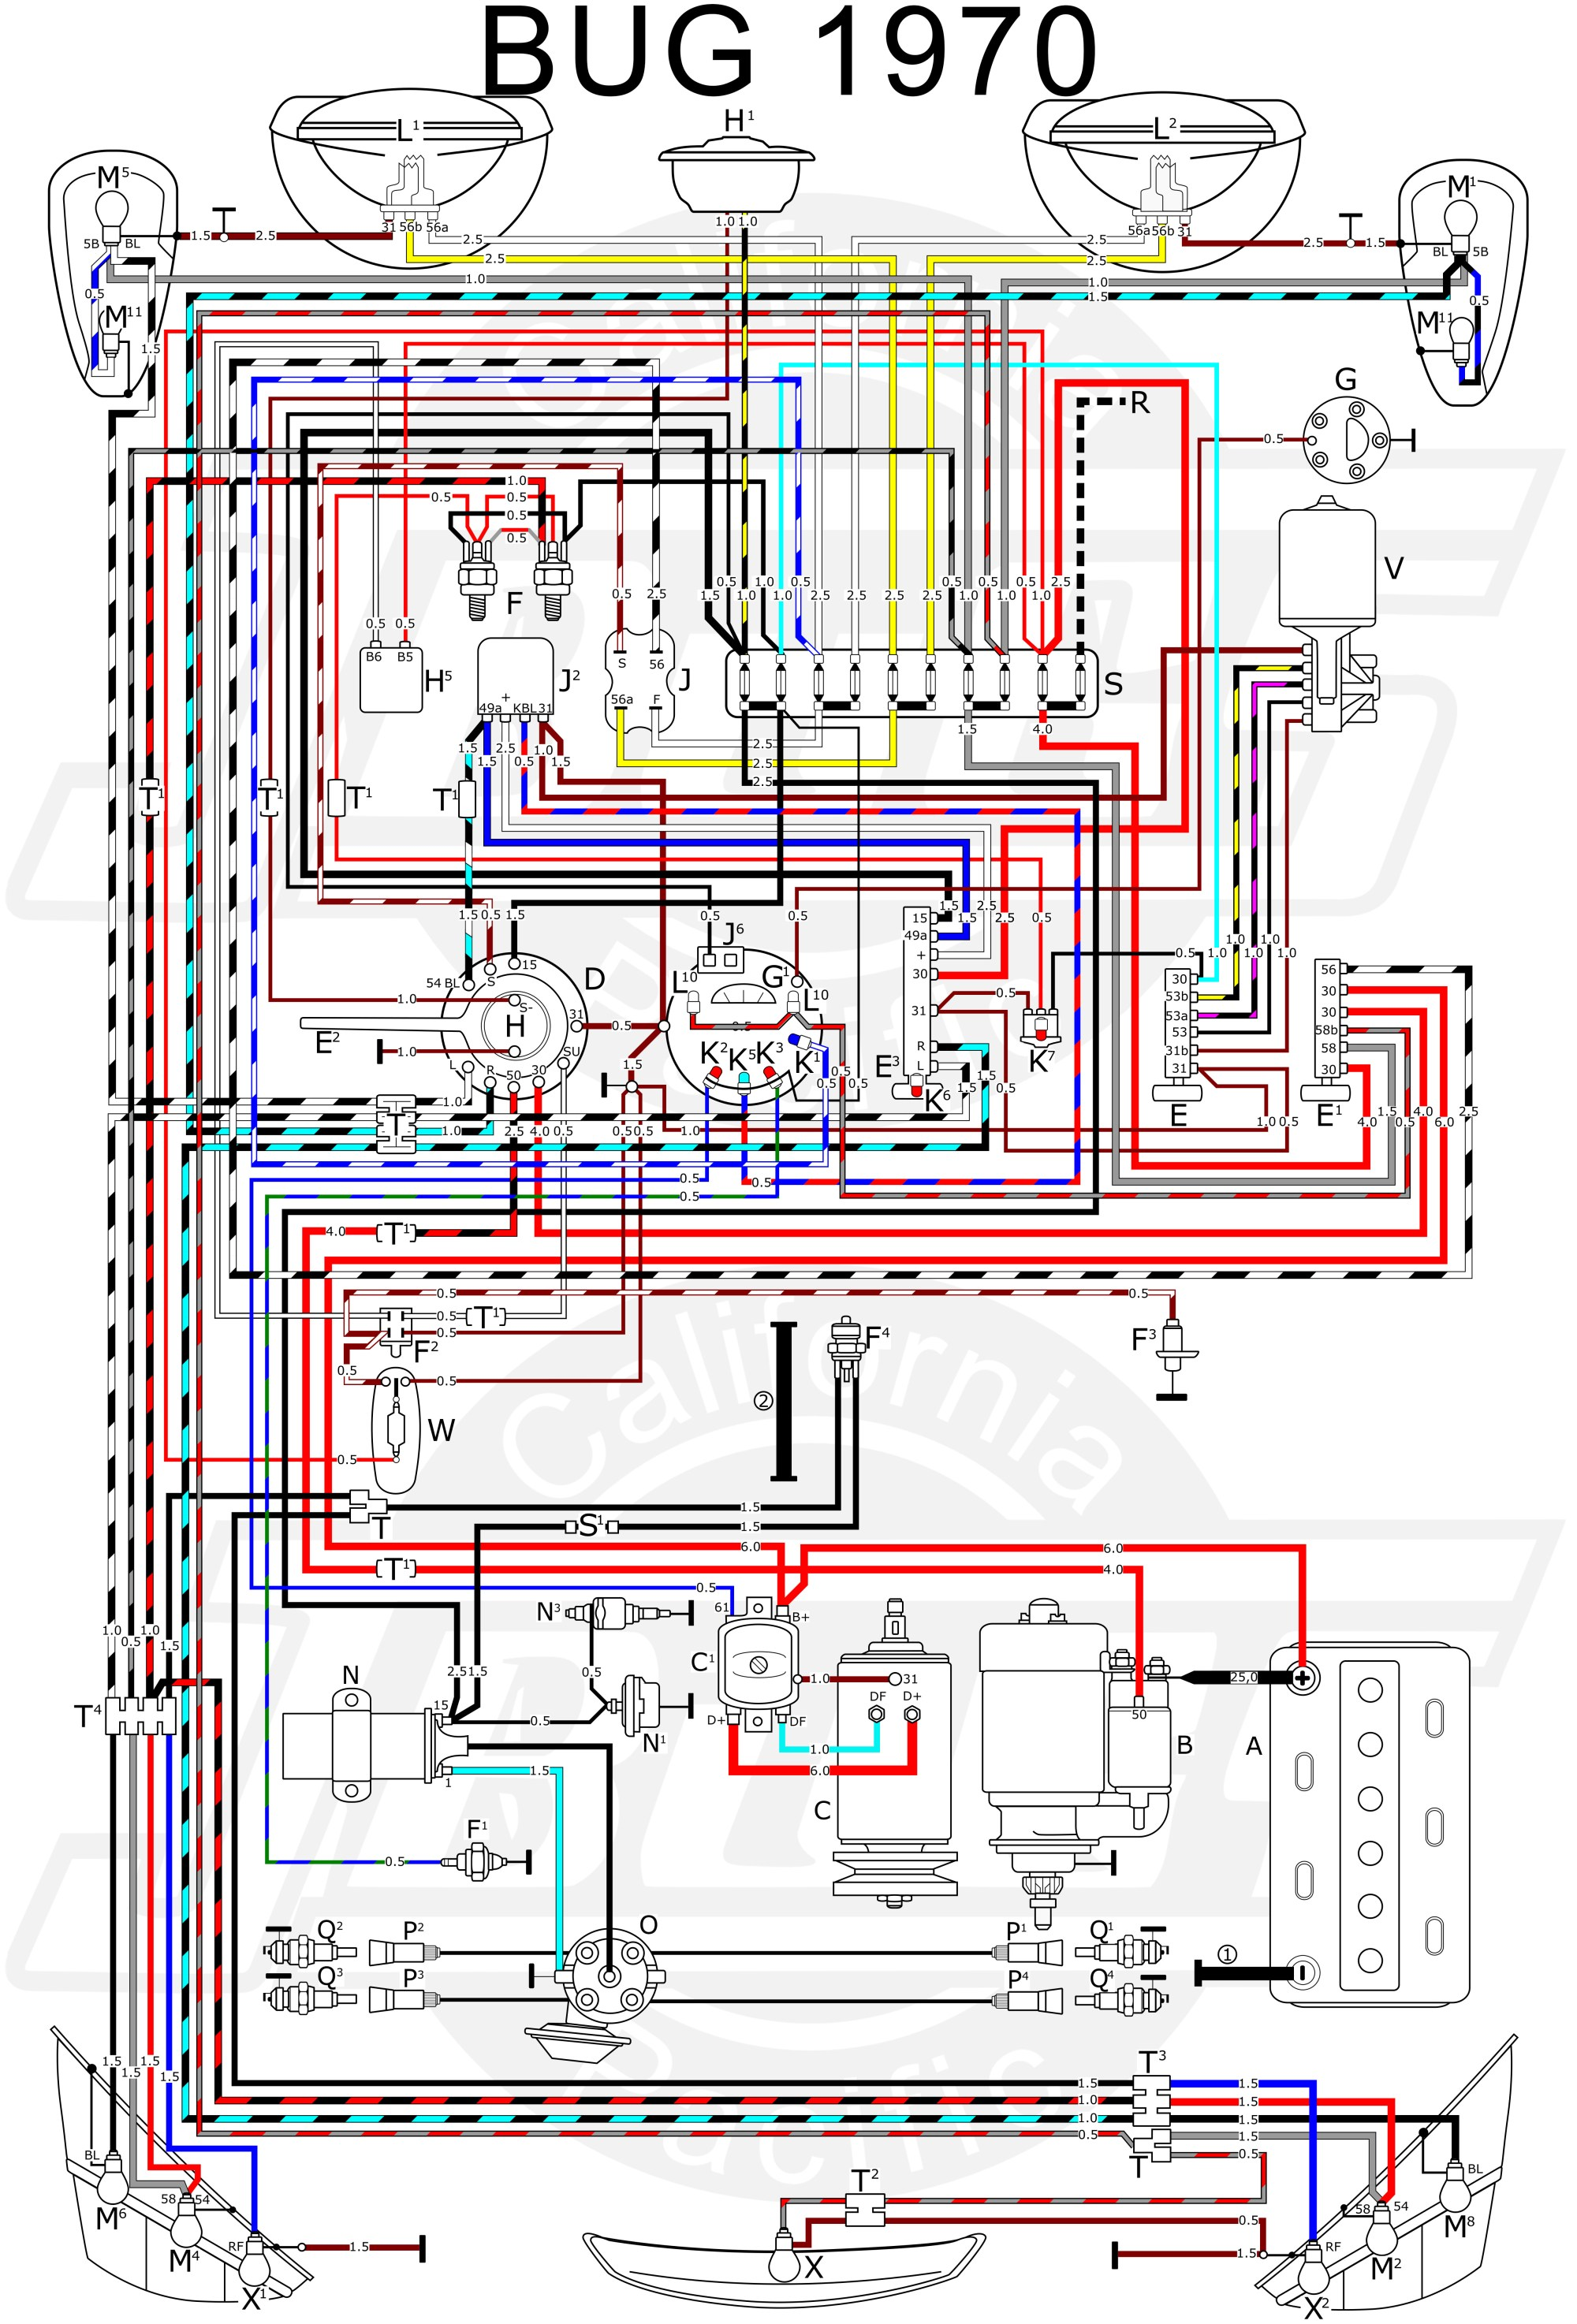 hight resolution of delco radio wiring diagram 1616 1794 wiring diagram auto delco radio wiring diagram 1616 1794